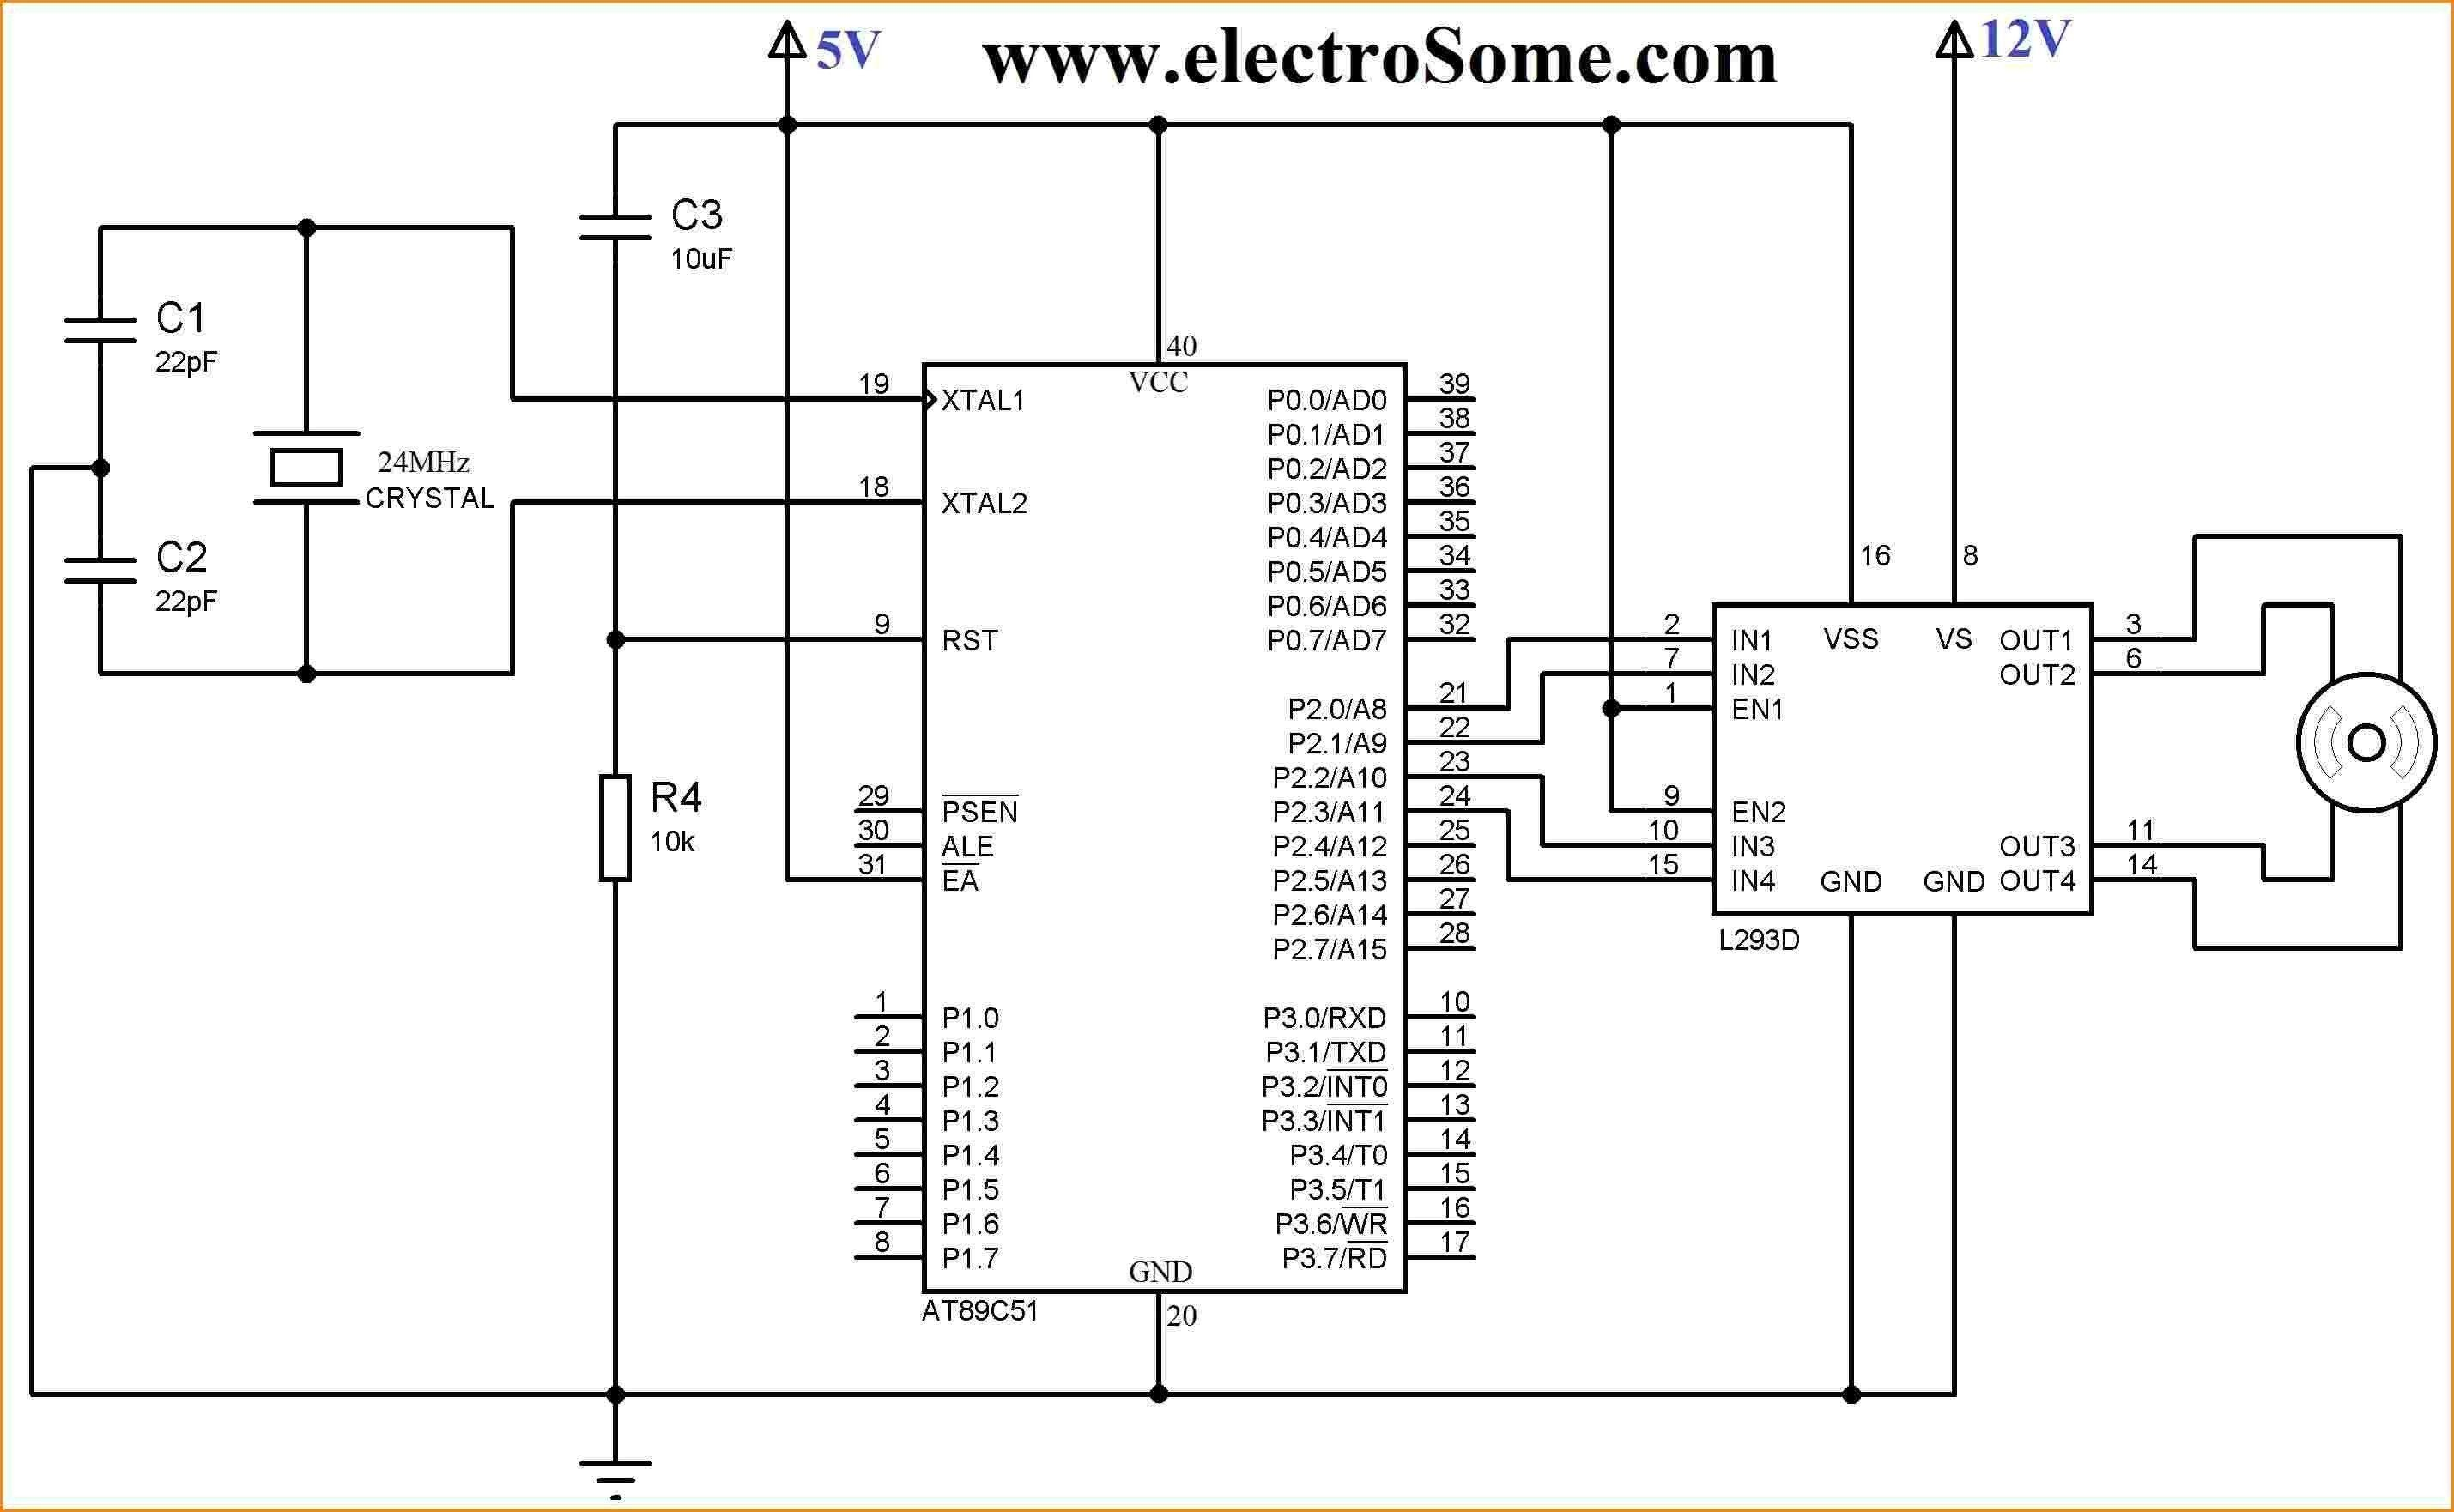 swann security camera n3960 wiring diagram collection electrical forswann security camera n3960 wiring diagram collection electrical